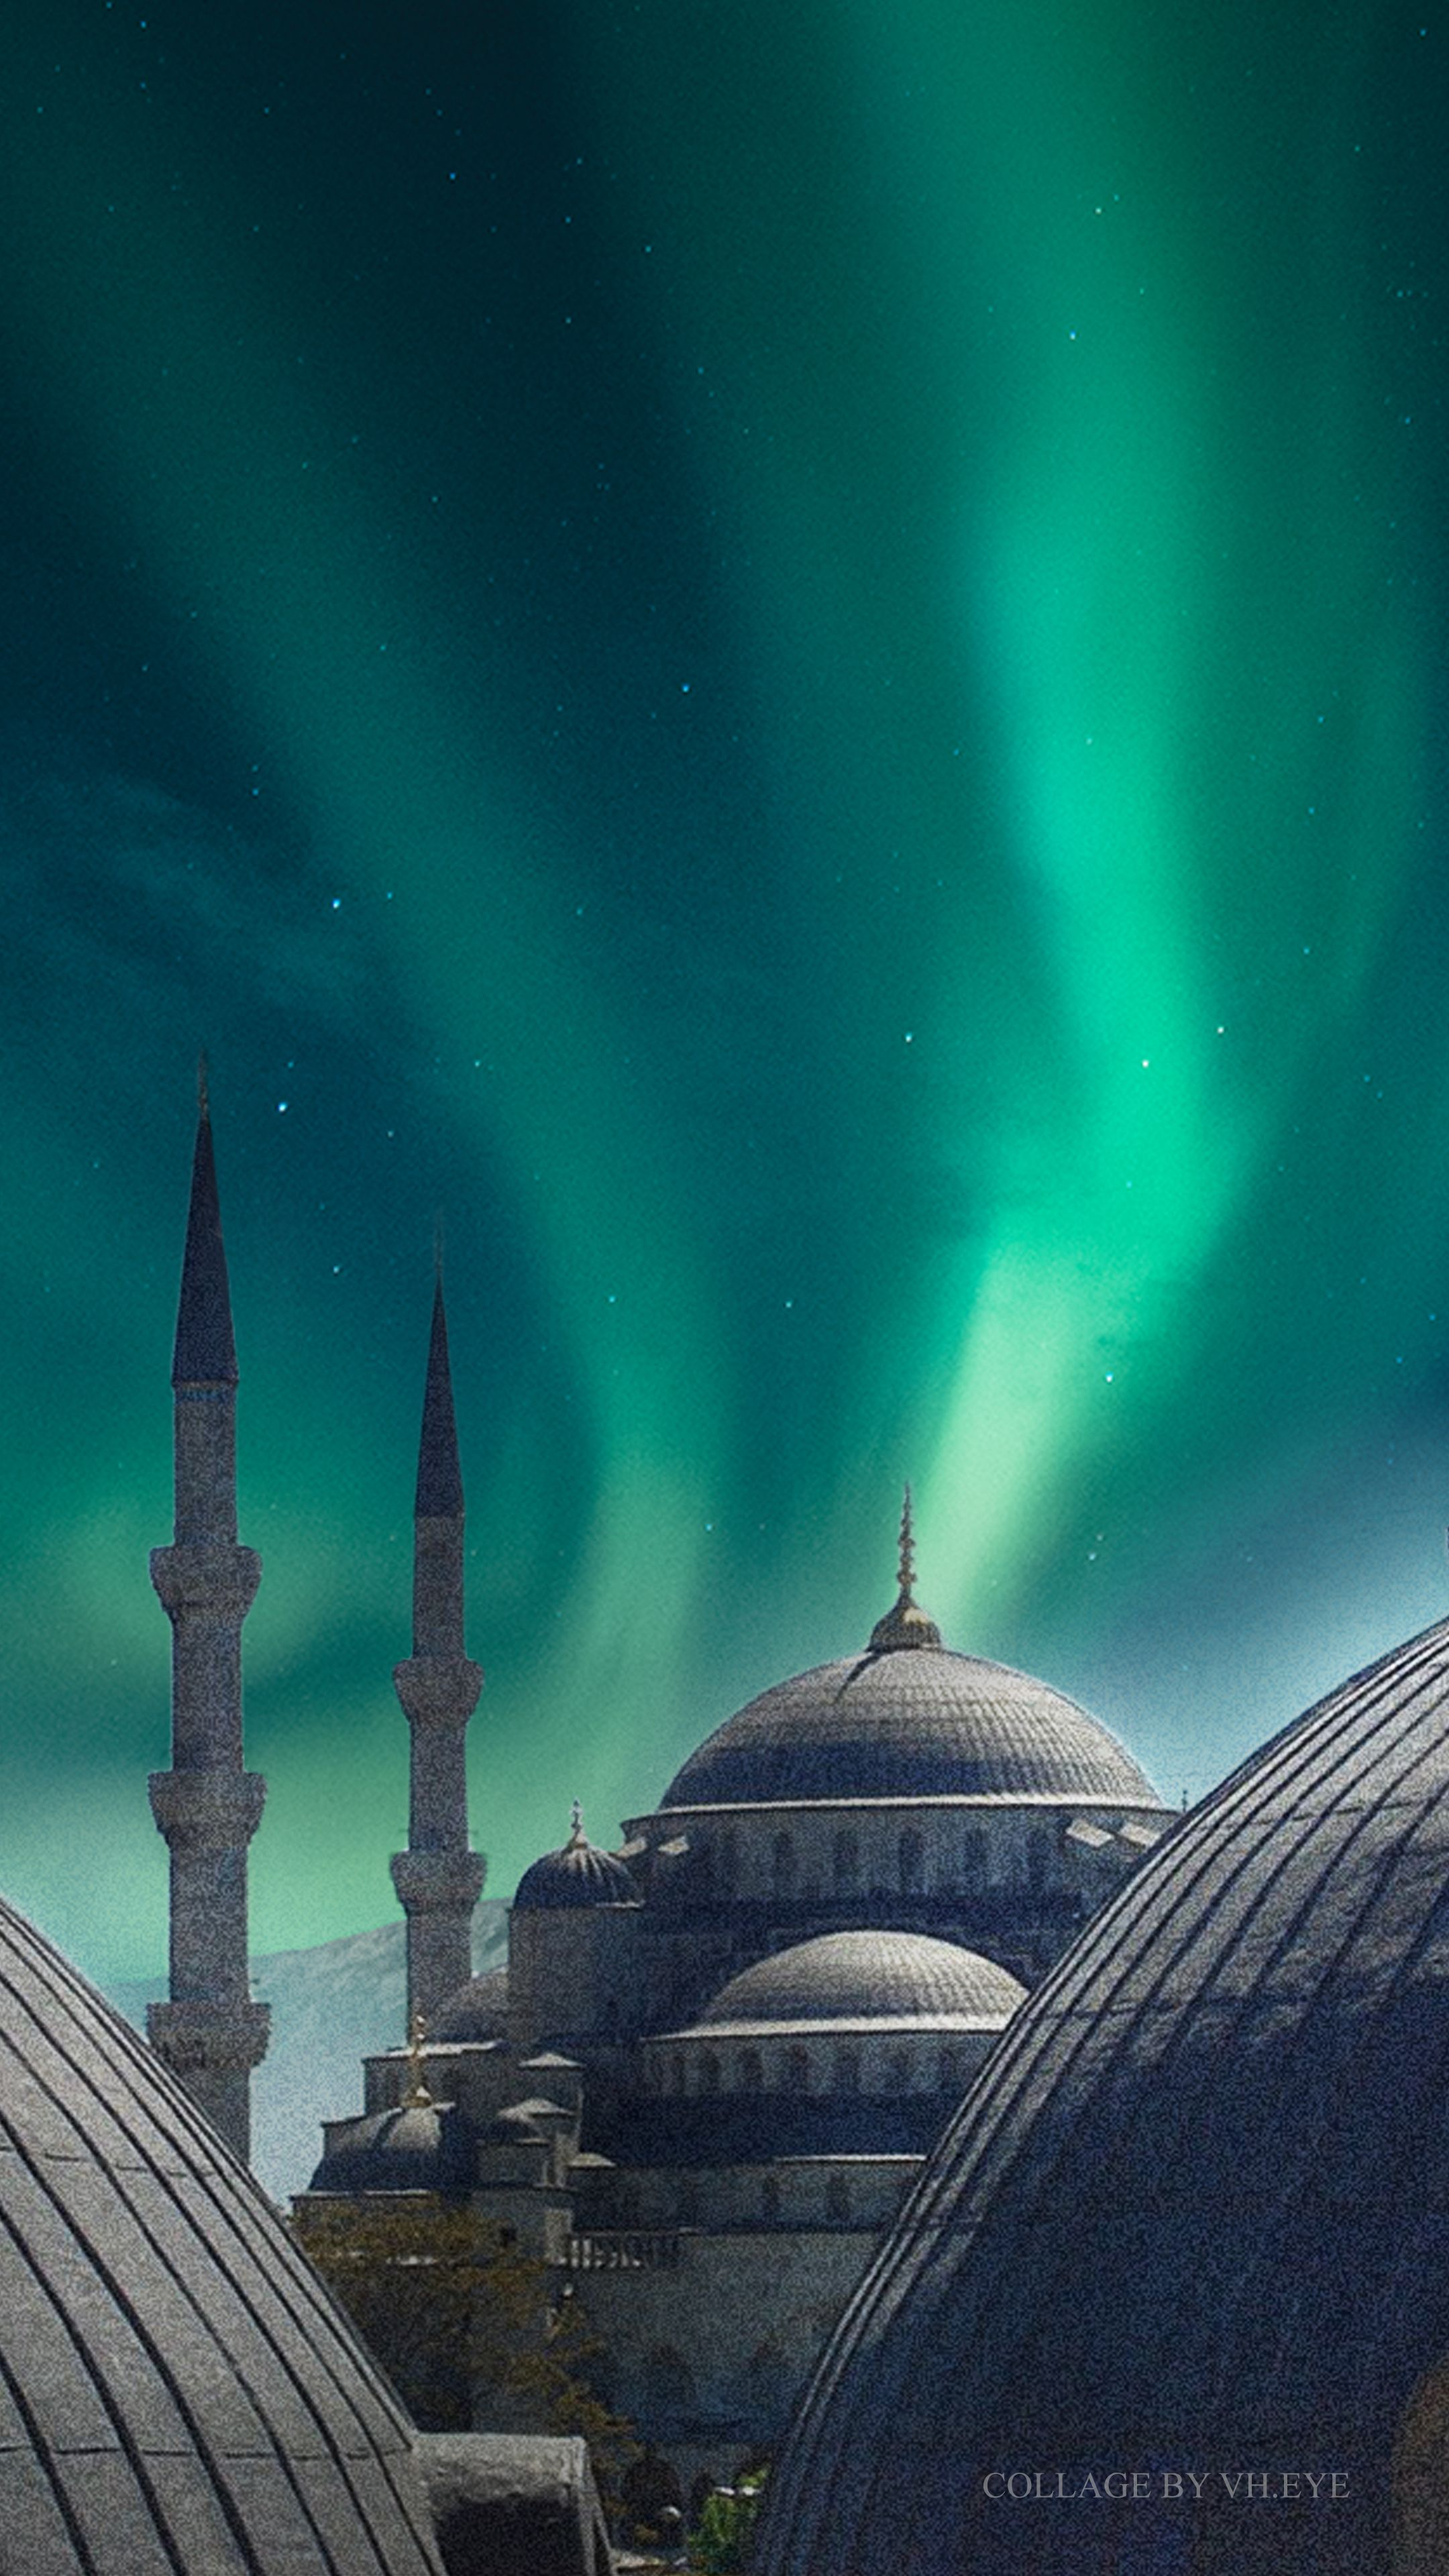 Turkey Blue Mosque Wallpaper Iphone Android Collage Art By Vh Eye Northern Lights Aurora Borealis Mosque Digital Collage Art Islamic Architecture